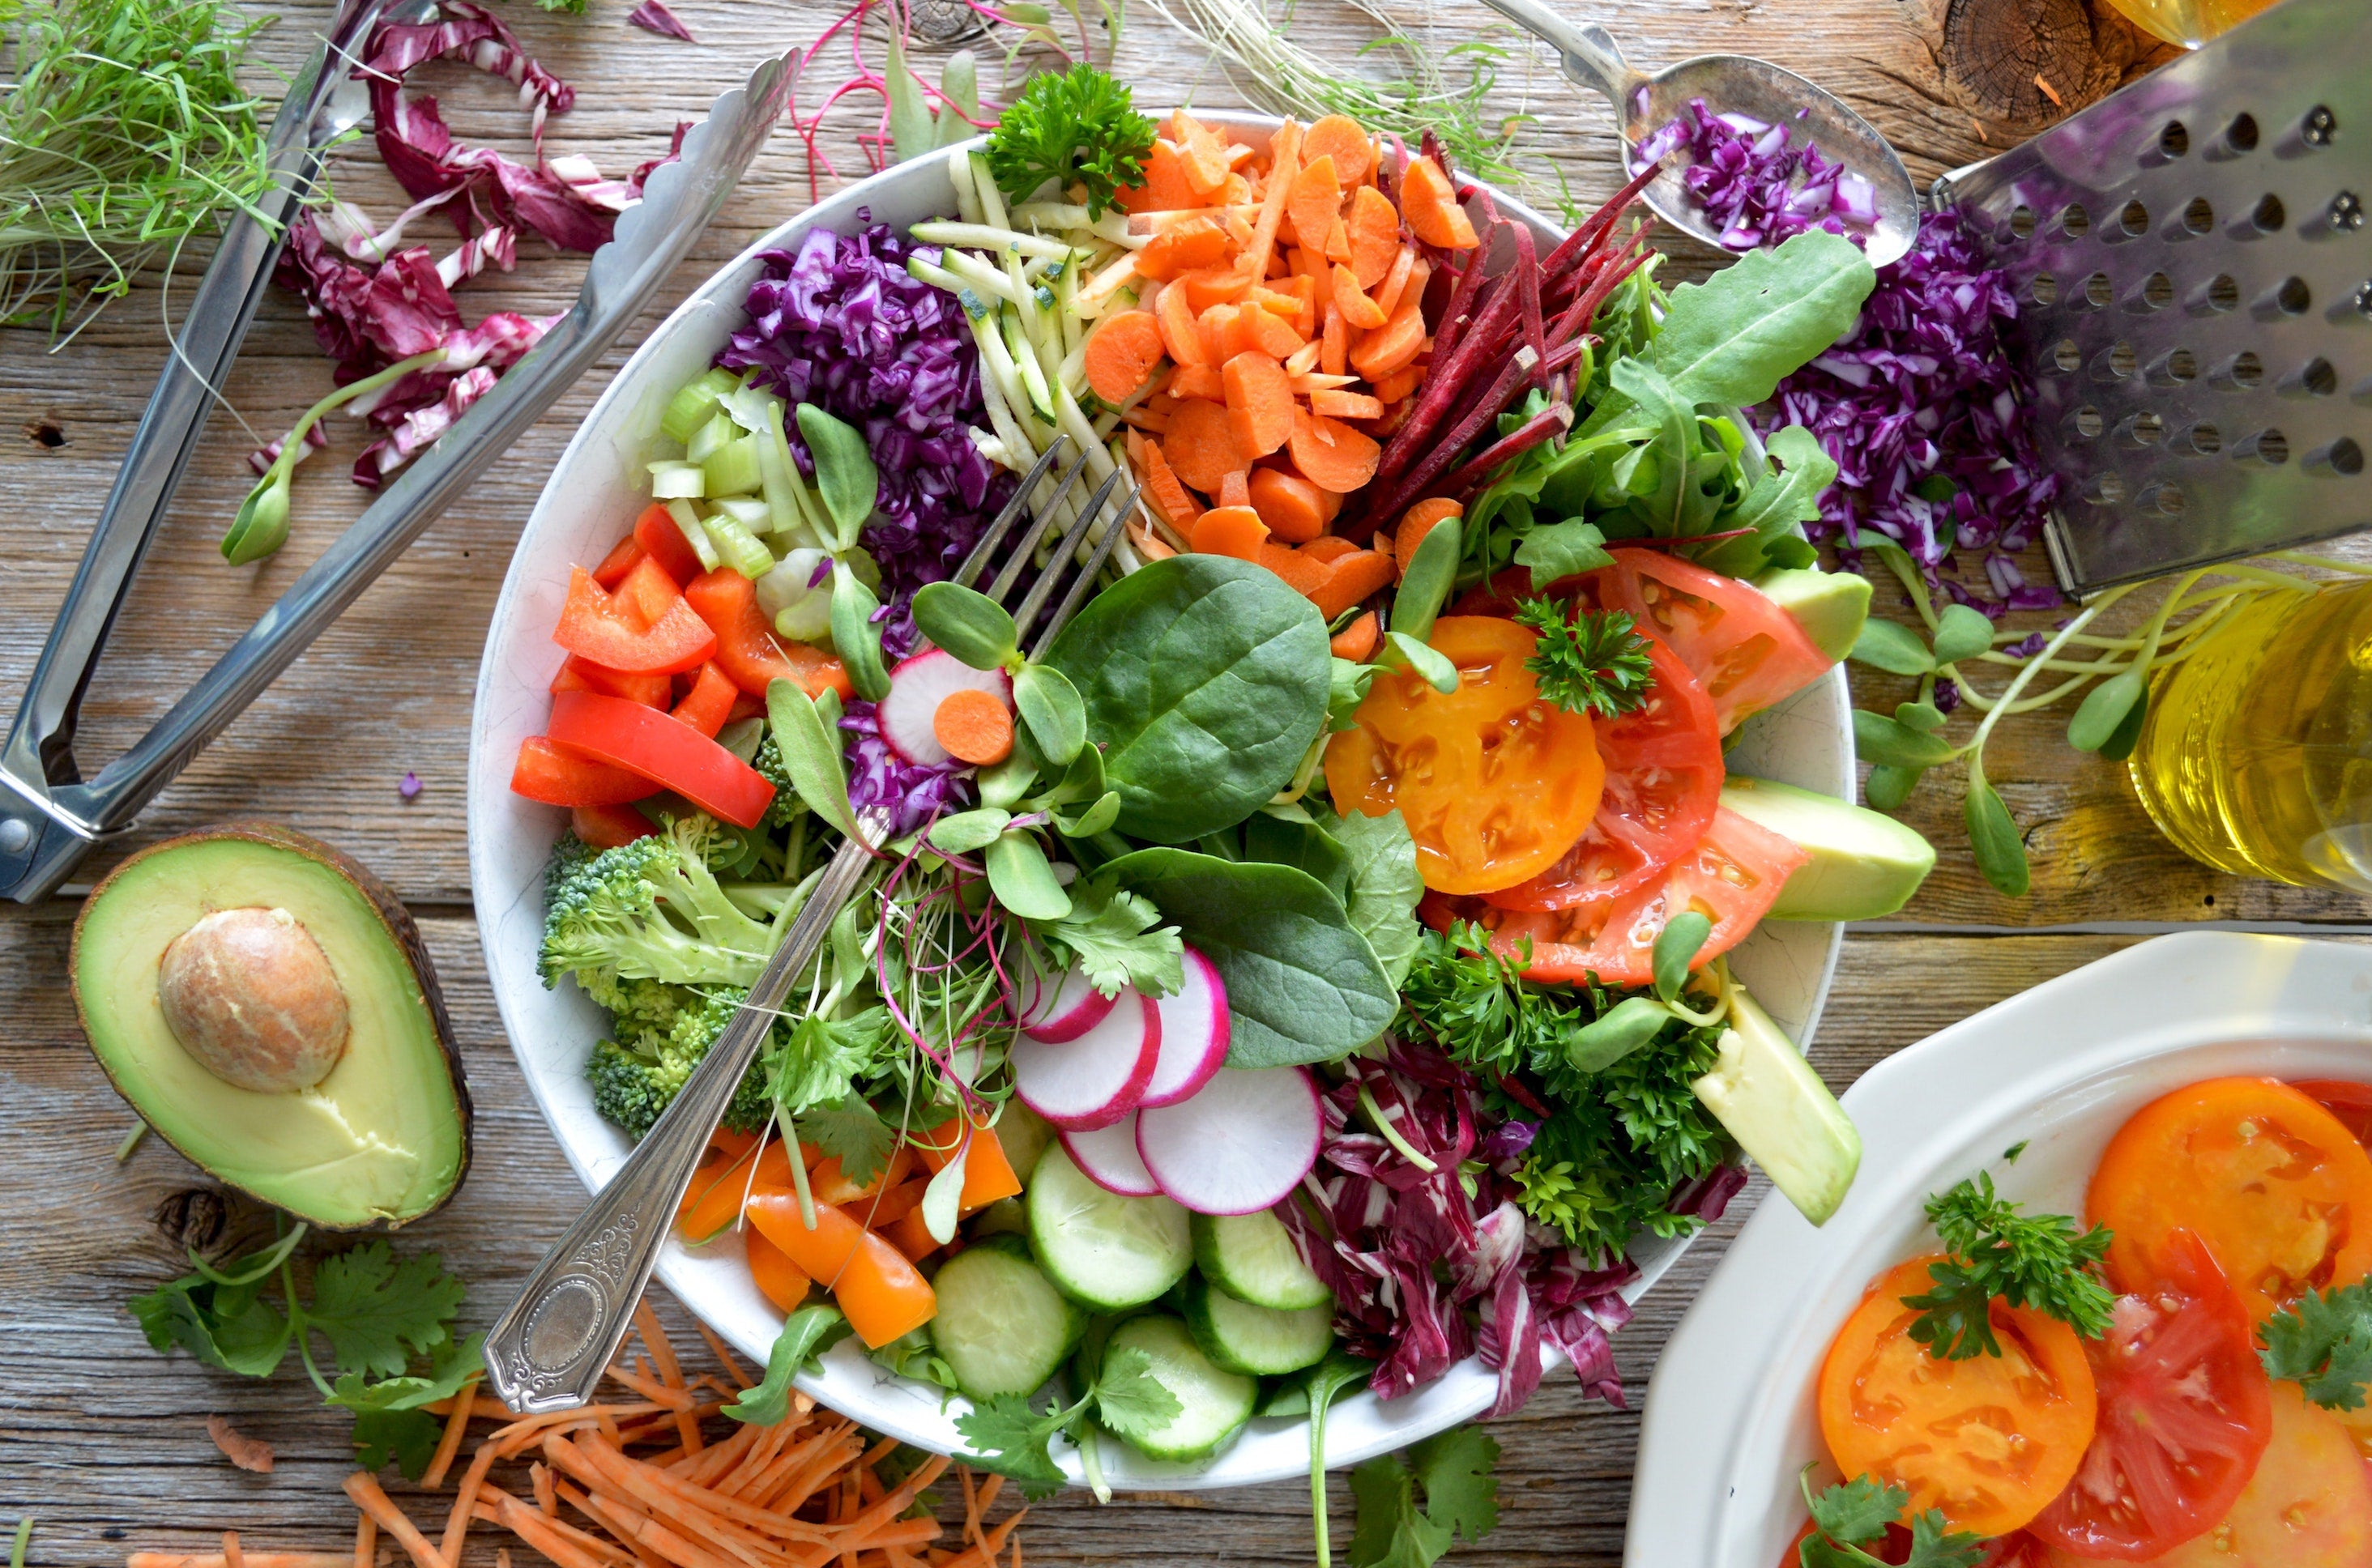 Healthy Foods on a plate with a fork